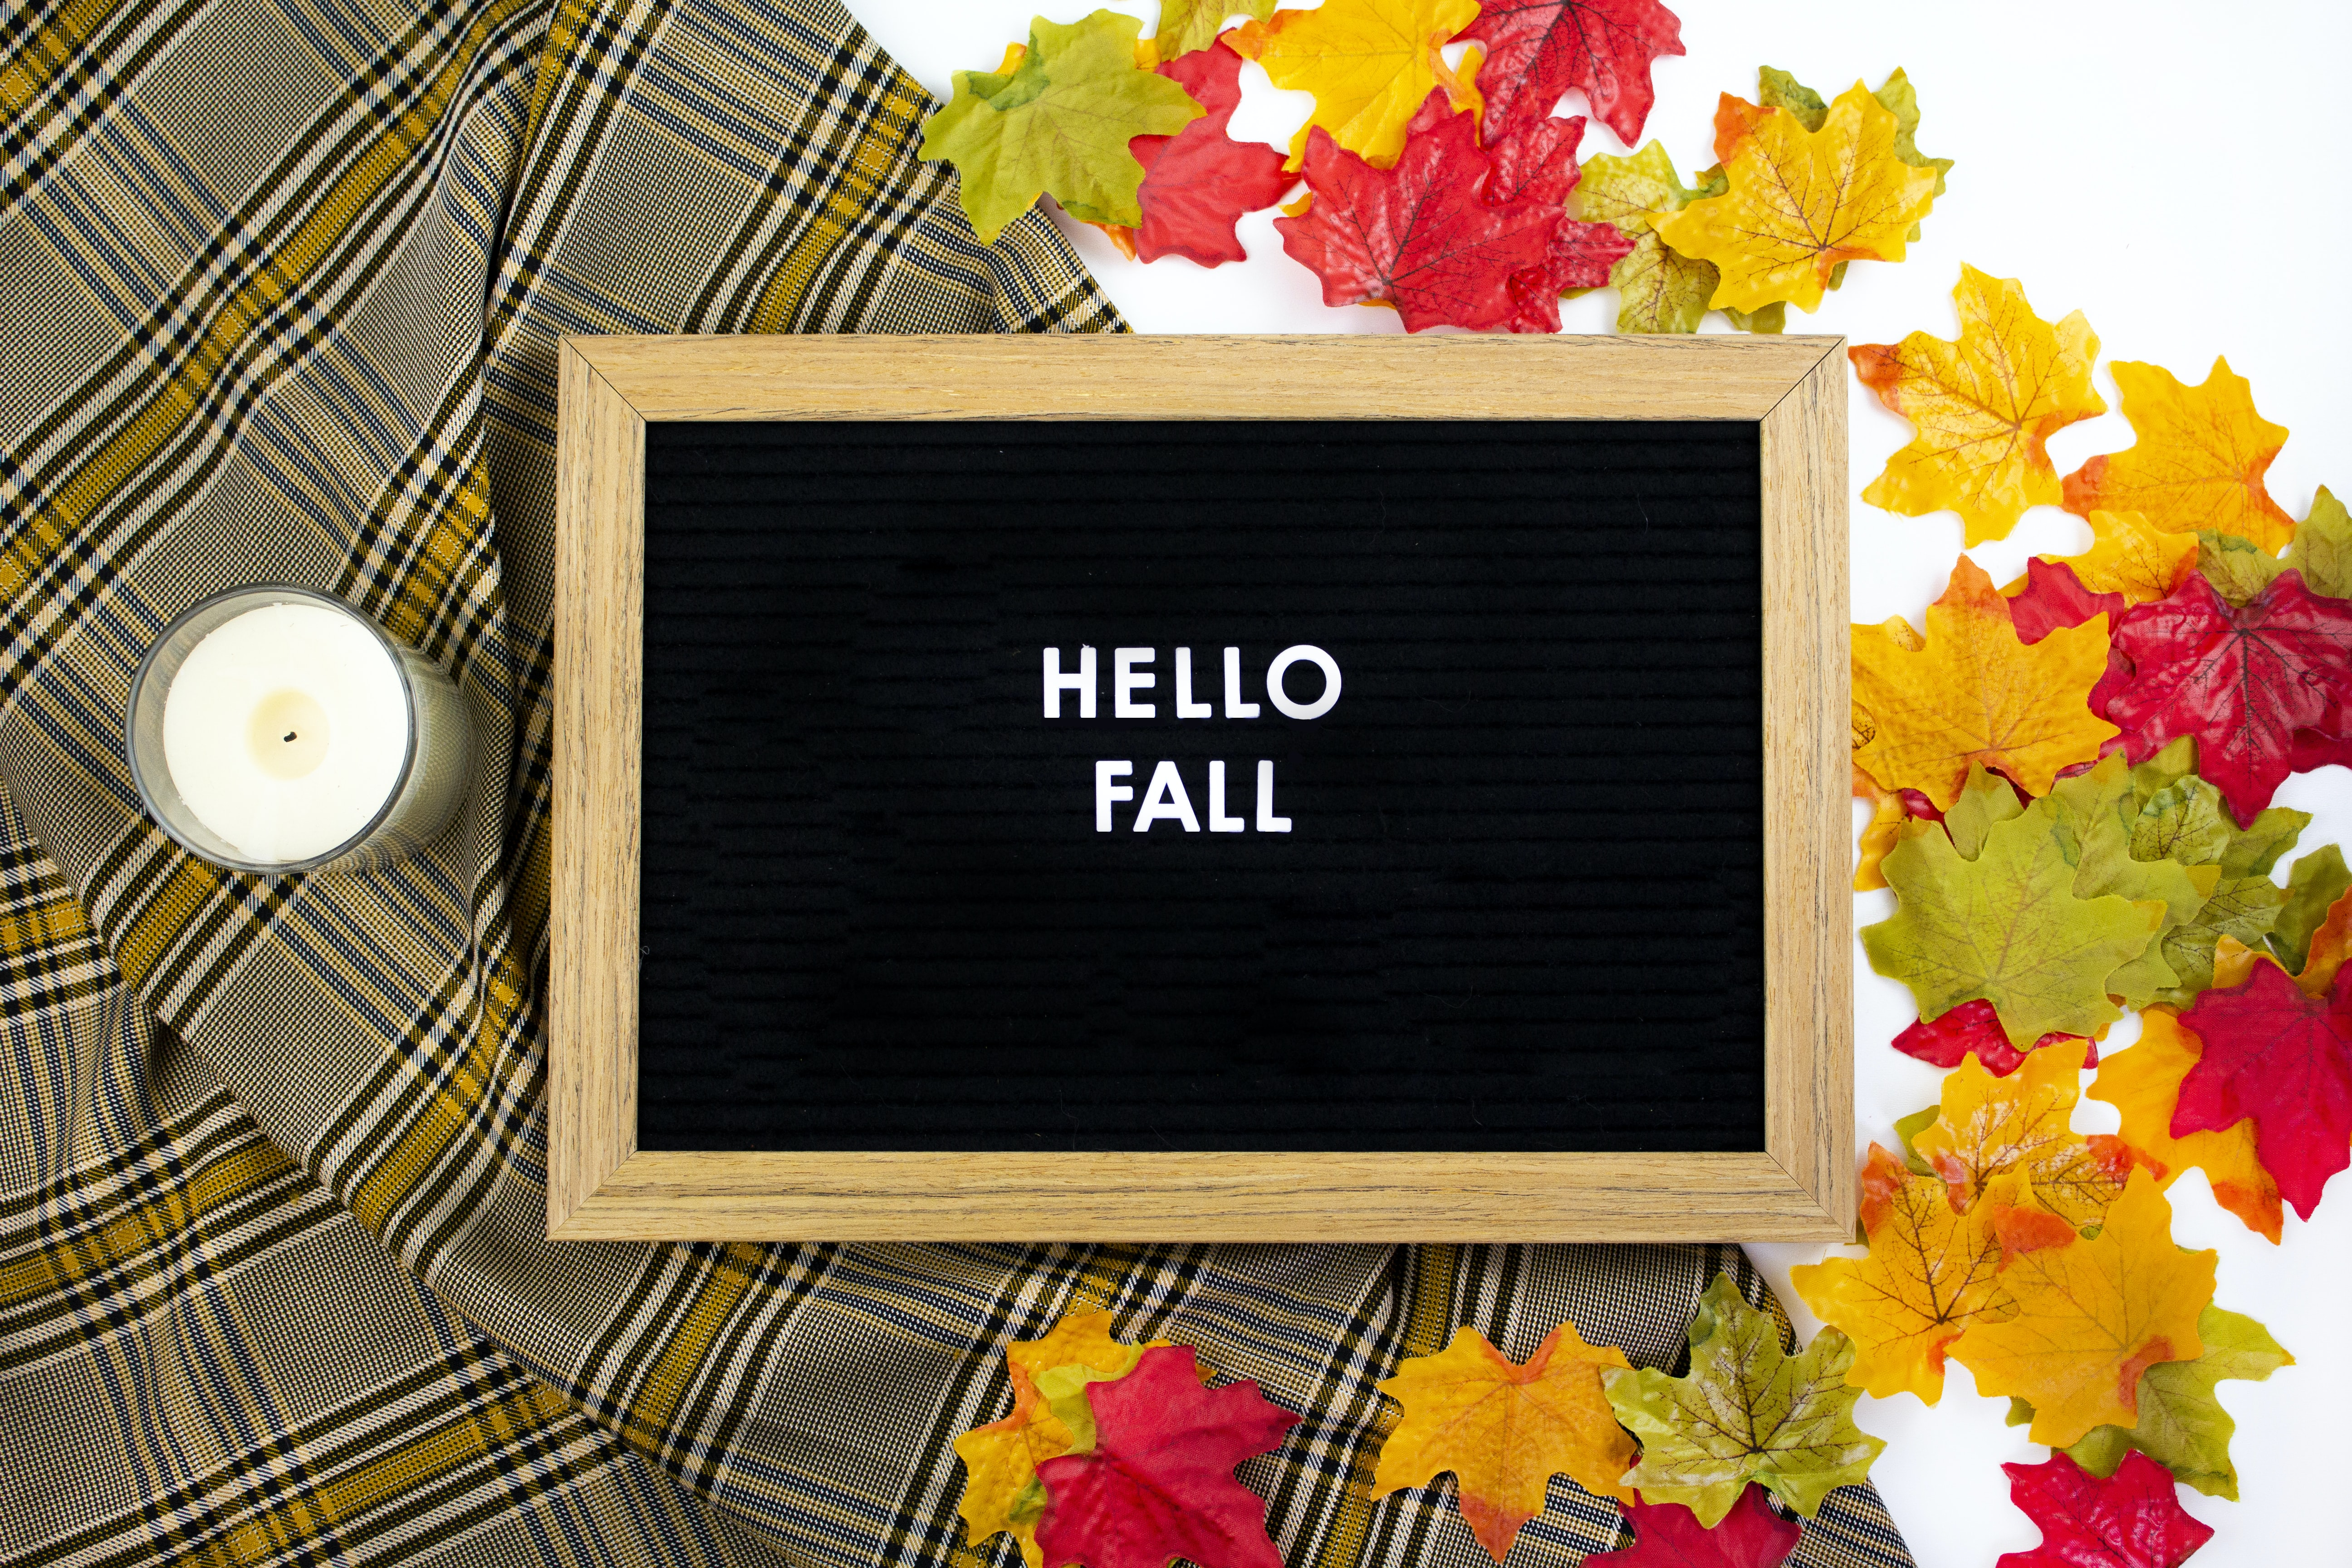 chalkboard with hello fall text